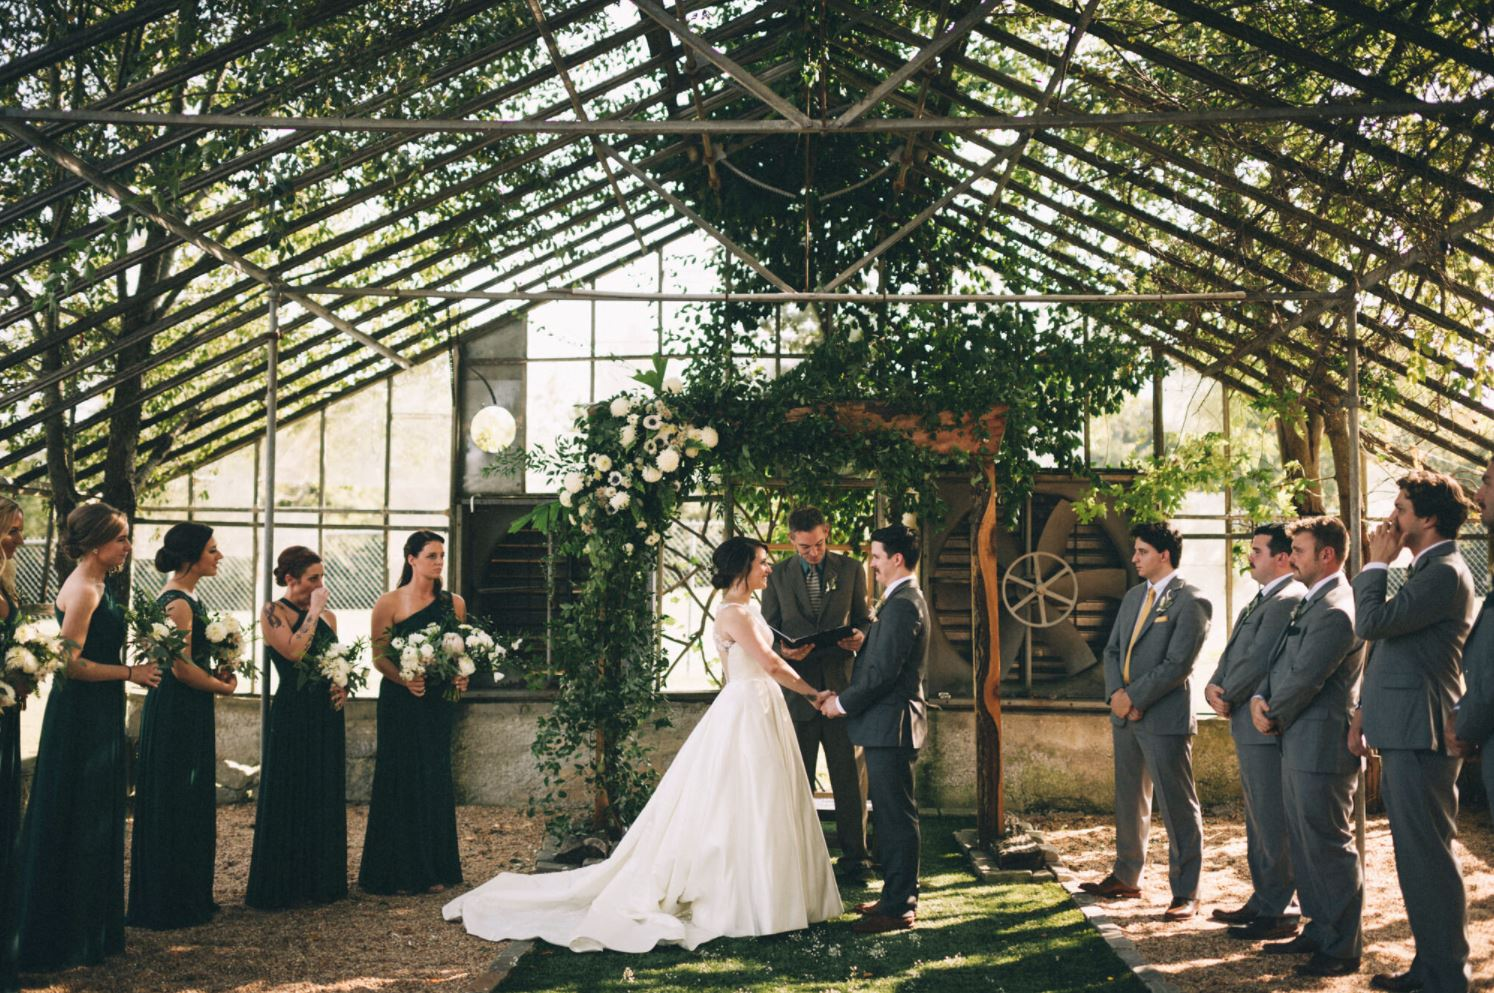 A wedding couple is getting married at the 3rd turn Oldham Gardens in Kentucky.